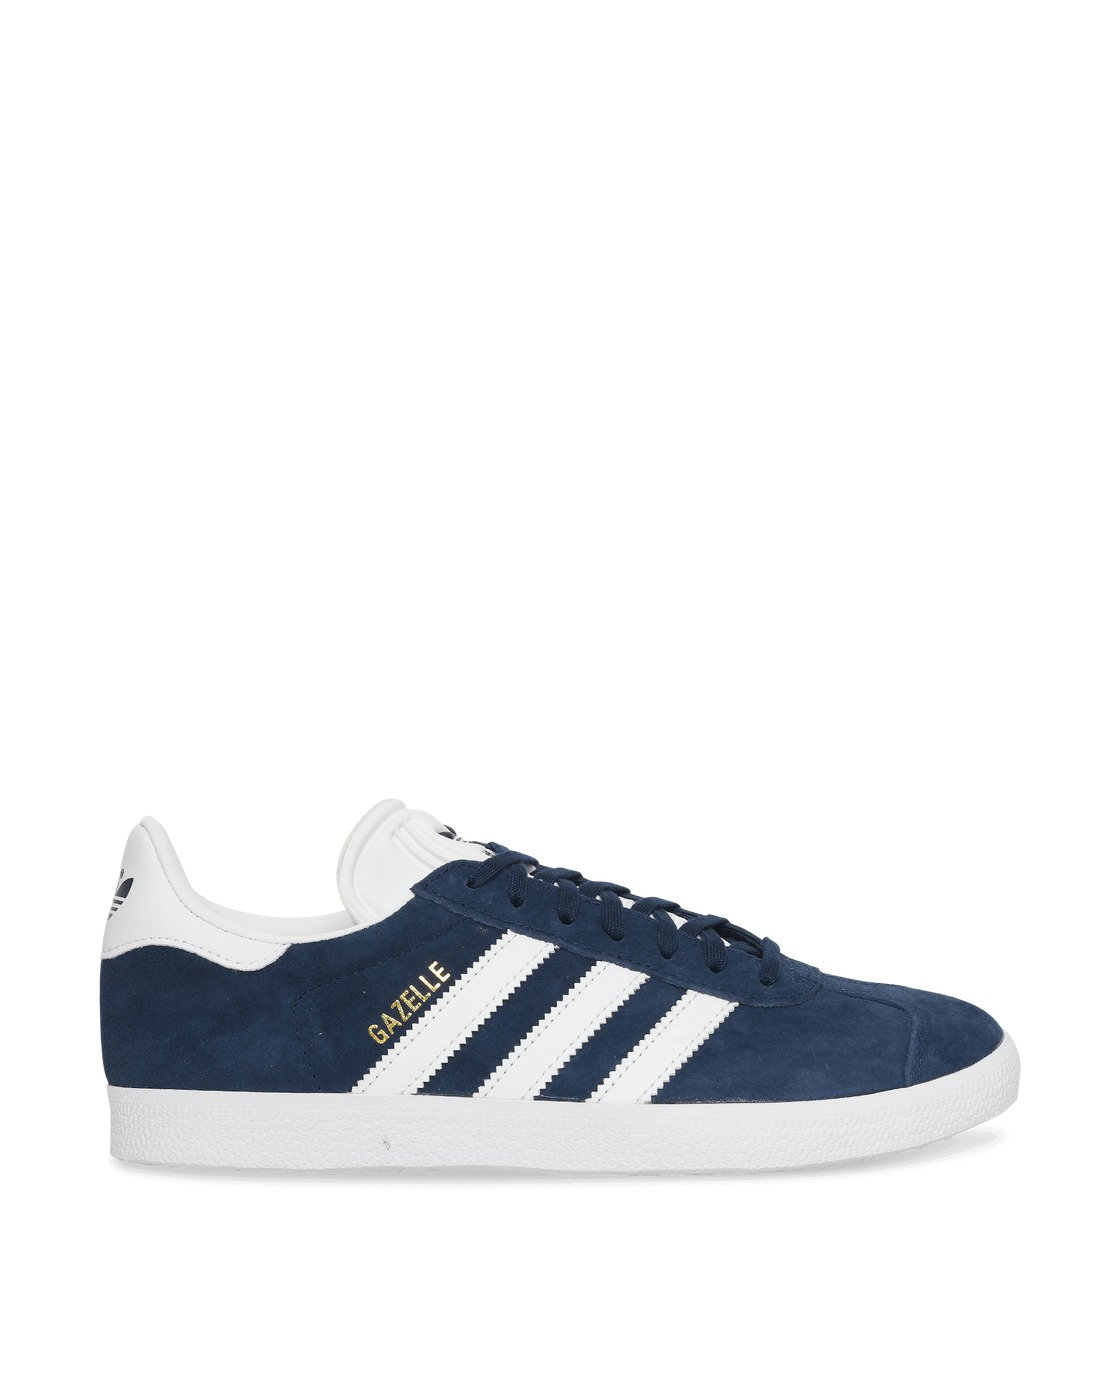 Photo: Adidas Originals Gazzelle Sneakers Navy/White